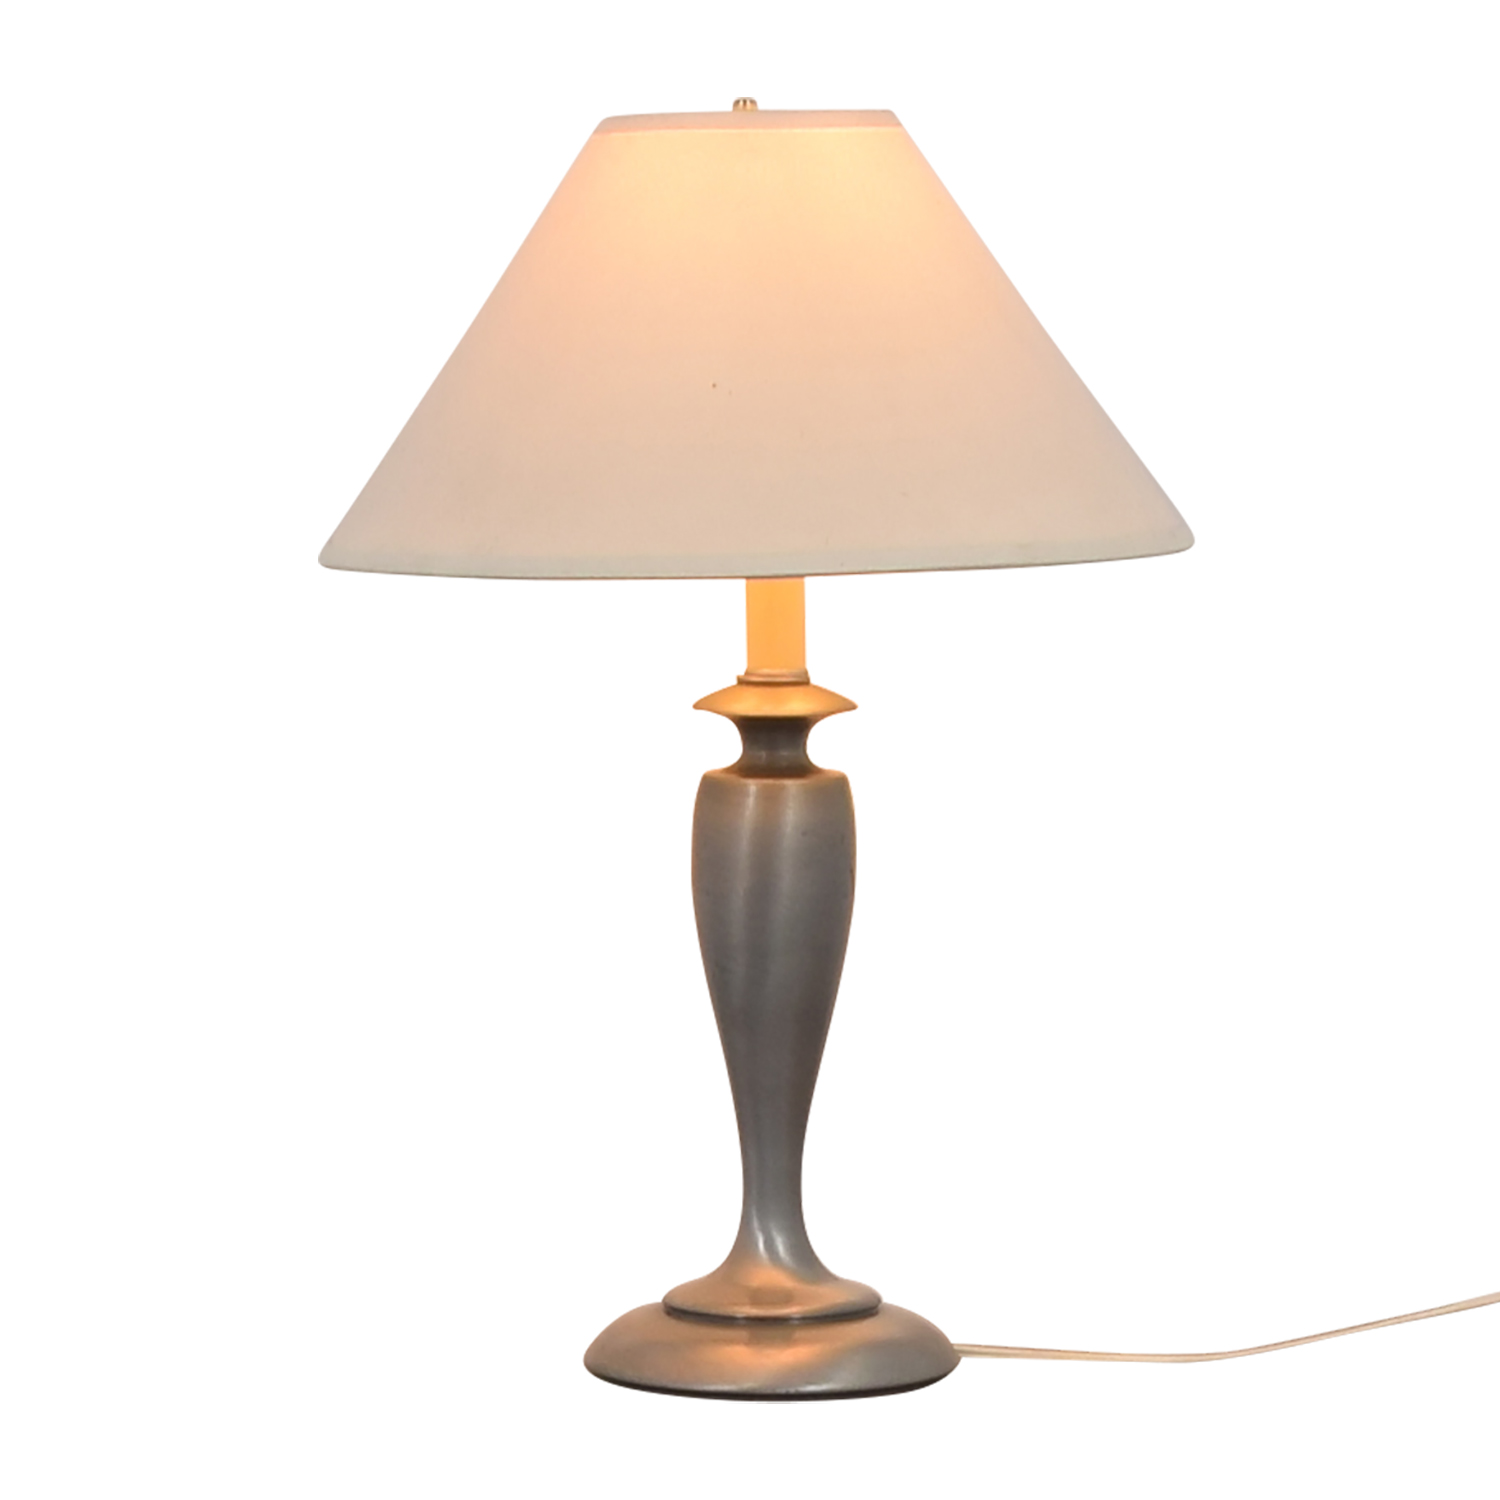 Crate & Barrel Crate & Barrel Table lamp price